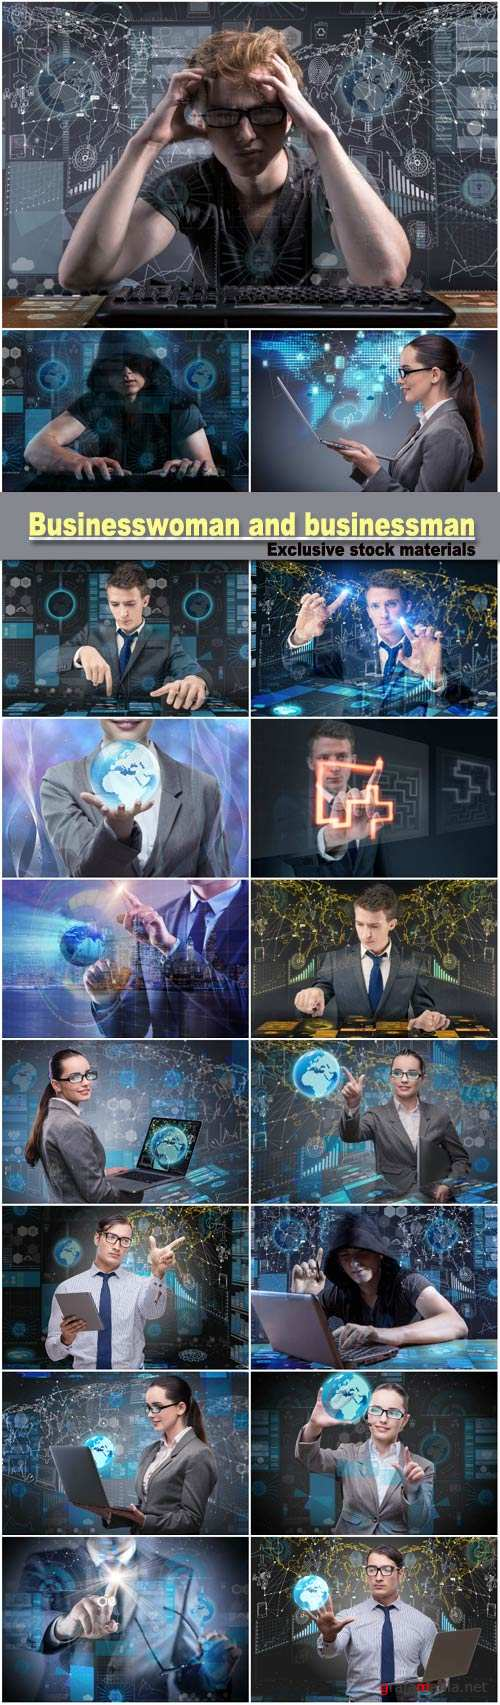 Young man and businesswoman in data management concept